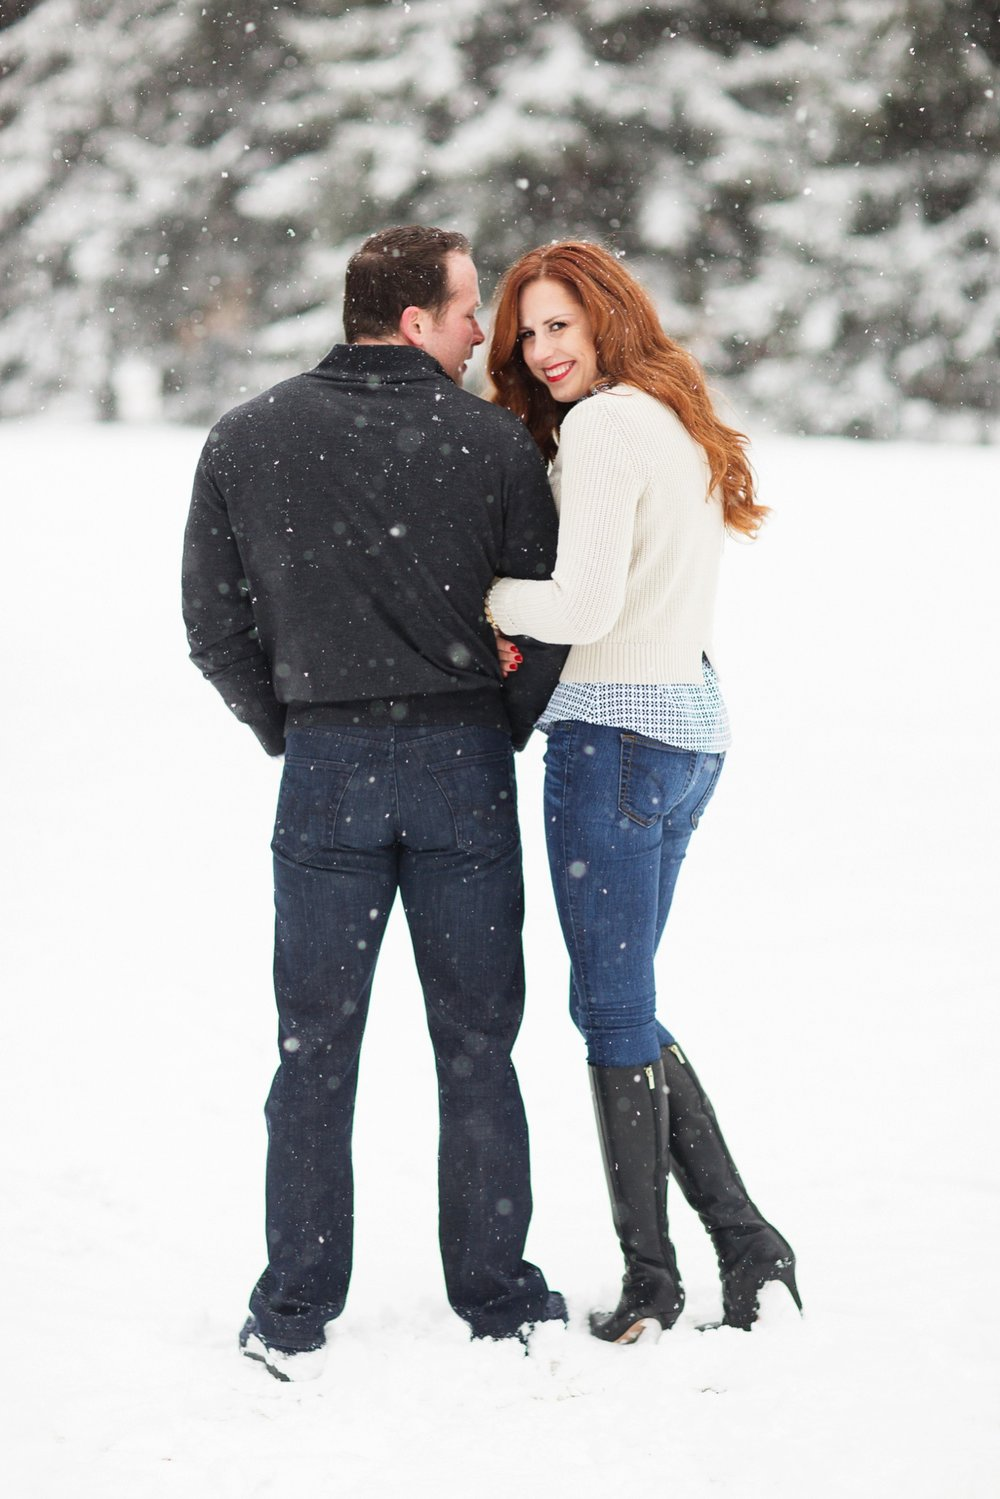 Snowy engagement session in Aspen